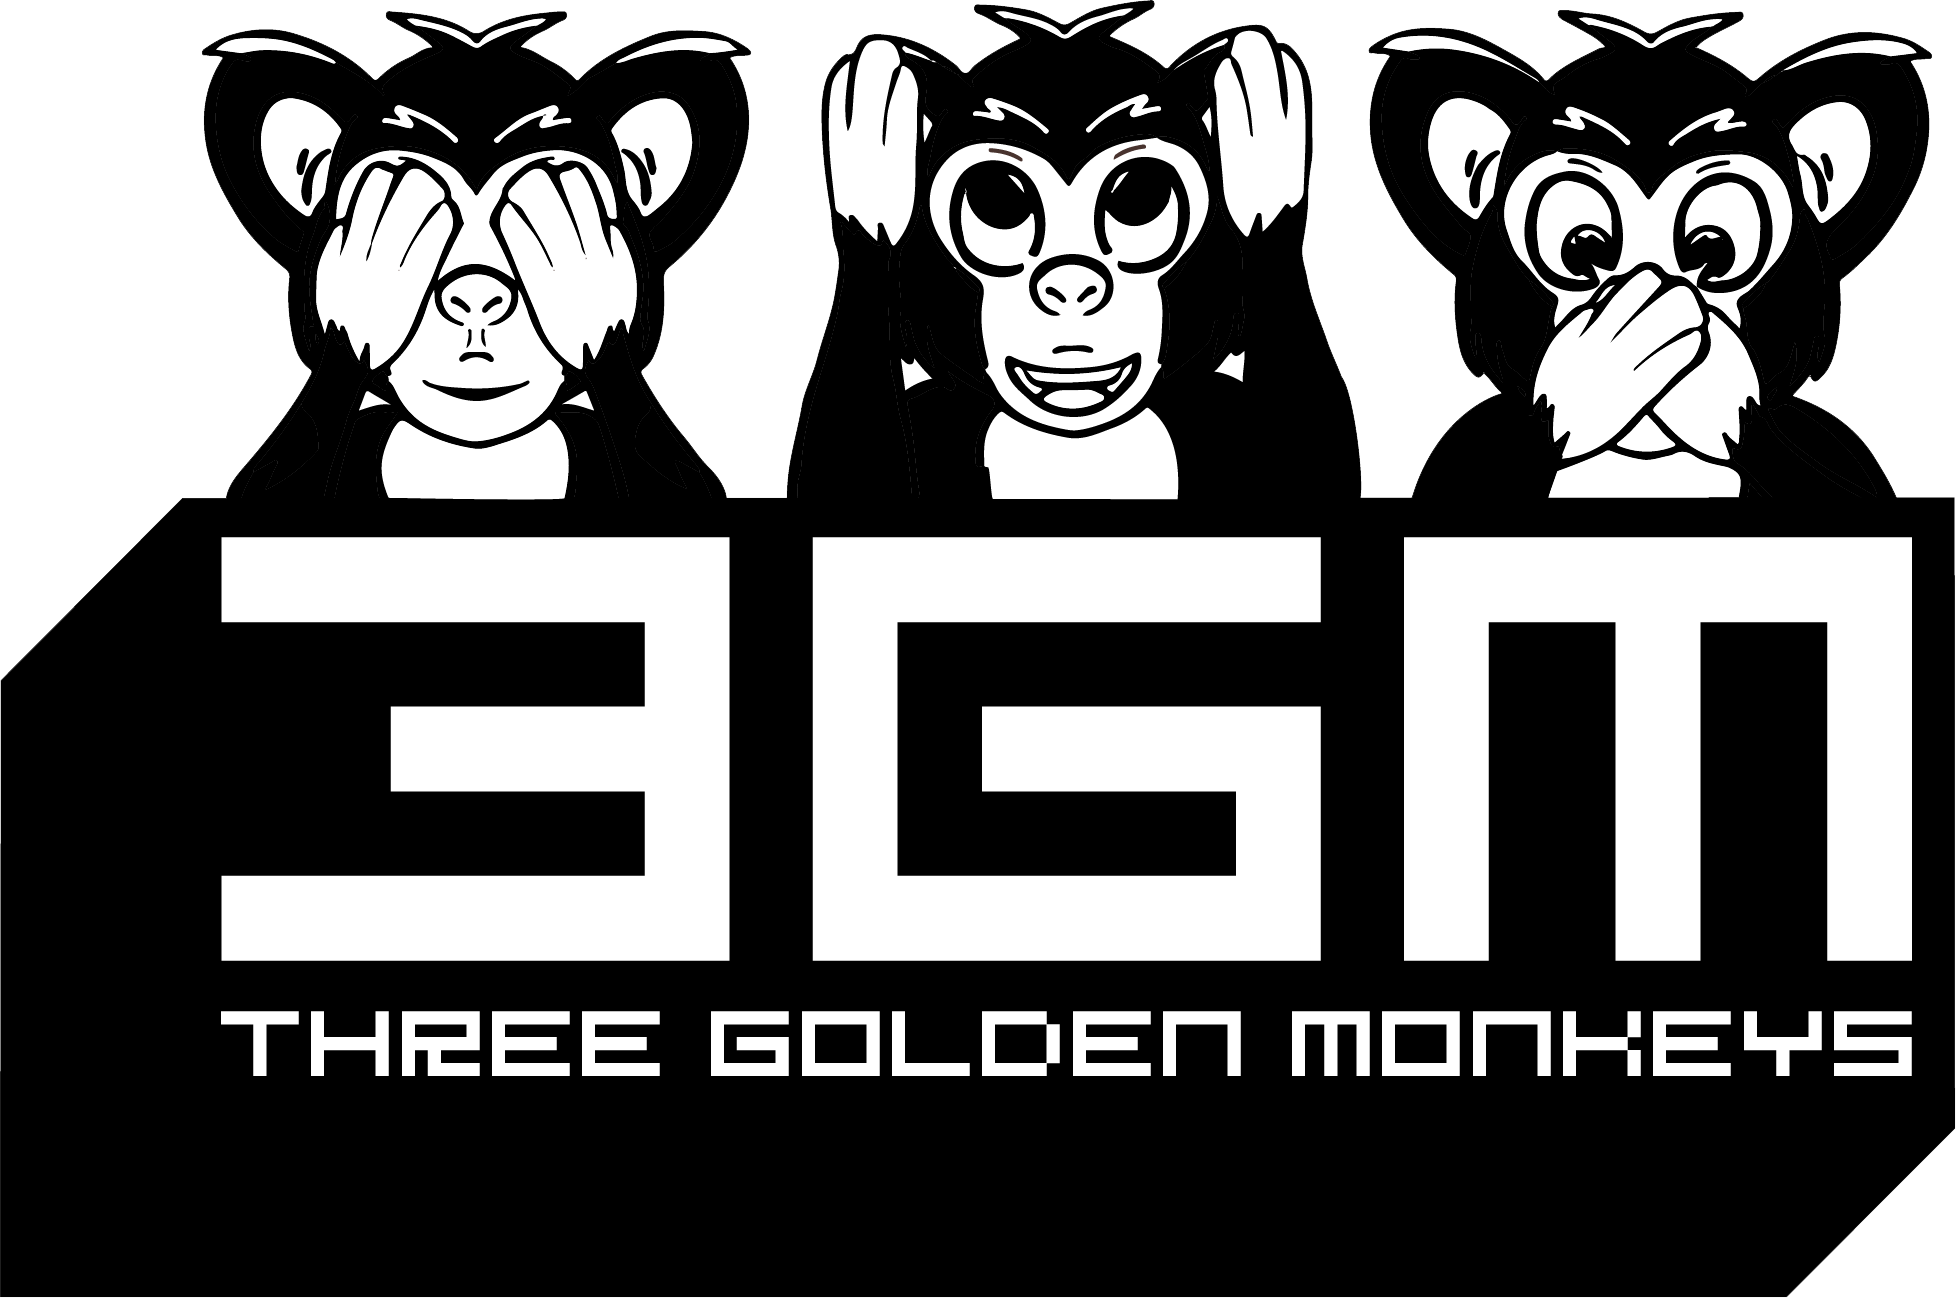 juegos superheroes y villanos Archives - Three Golden Monkeys Lab